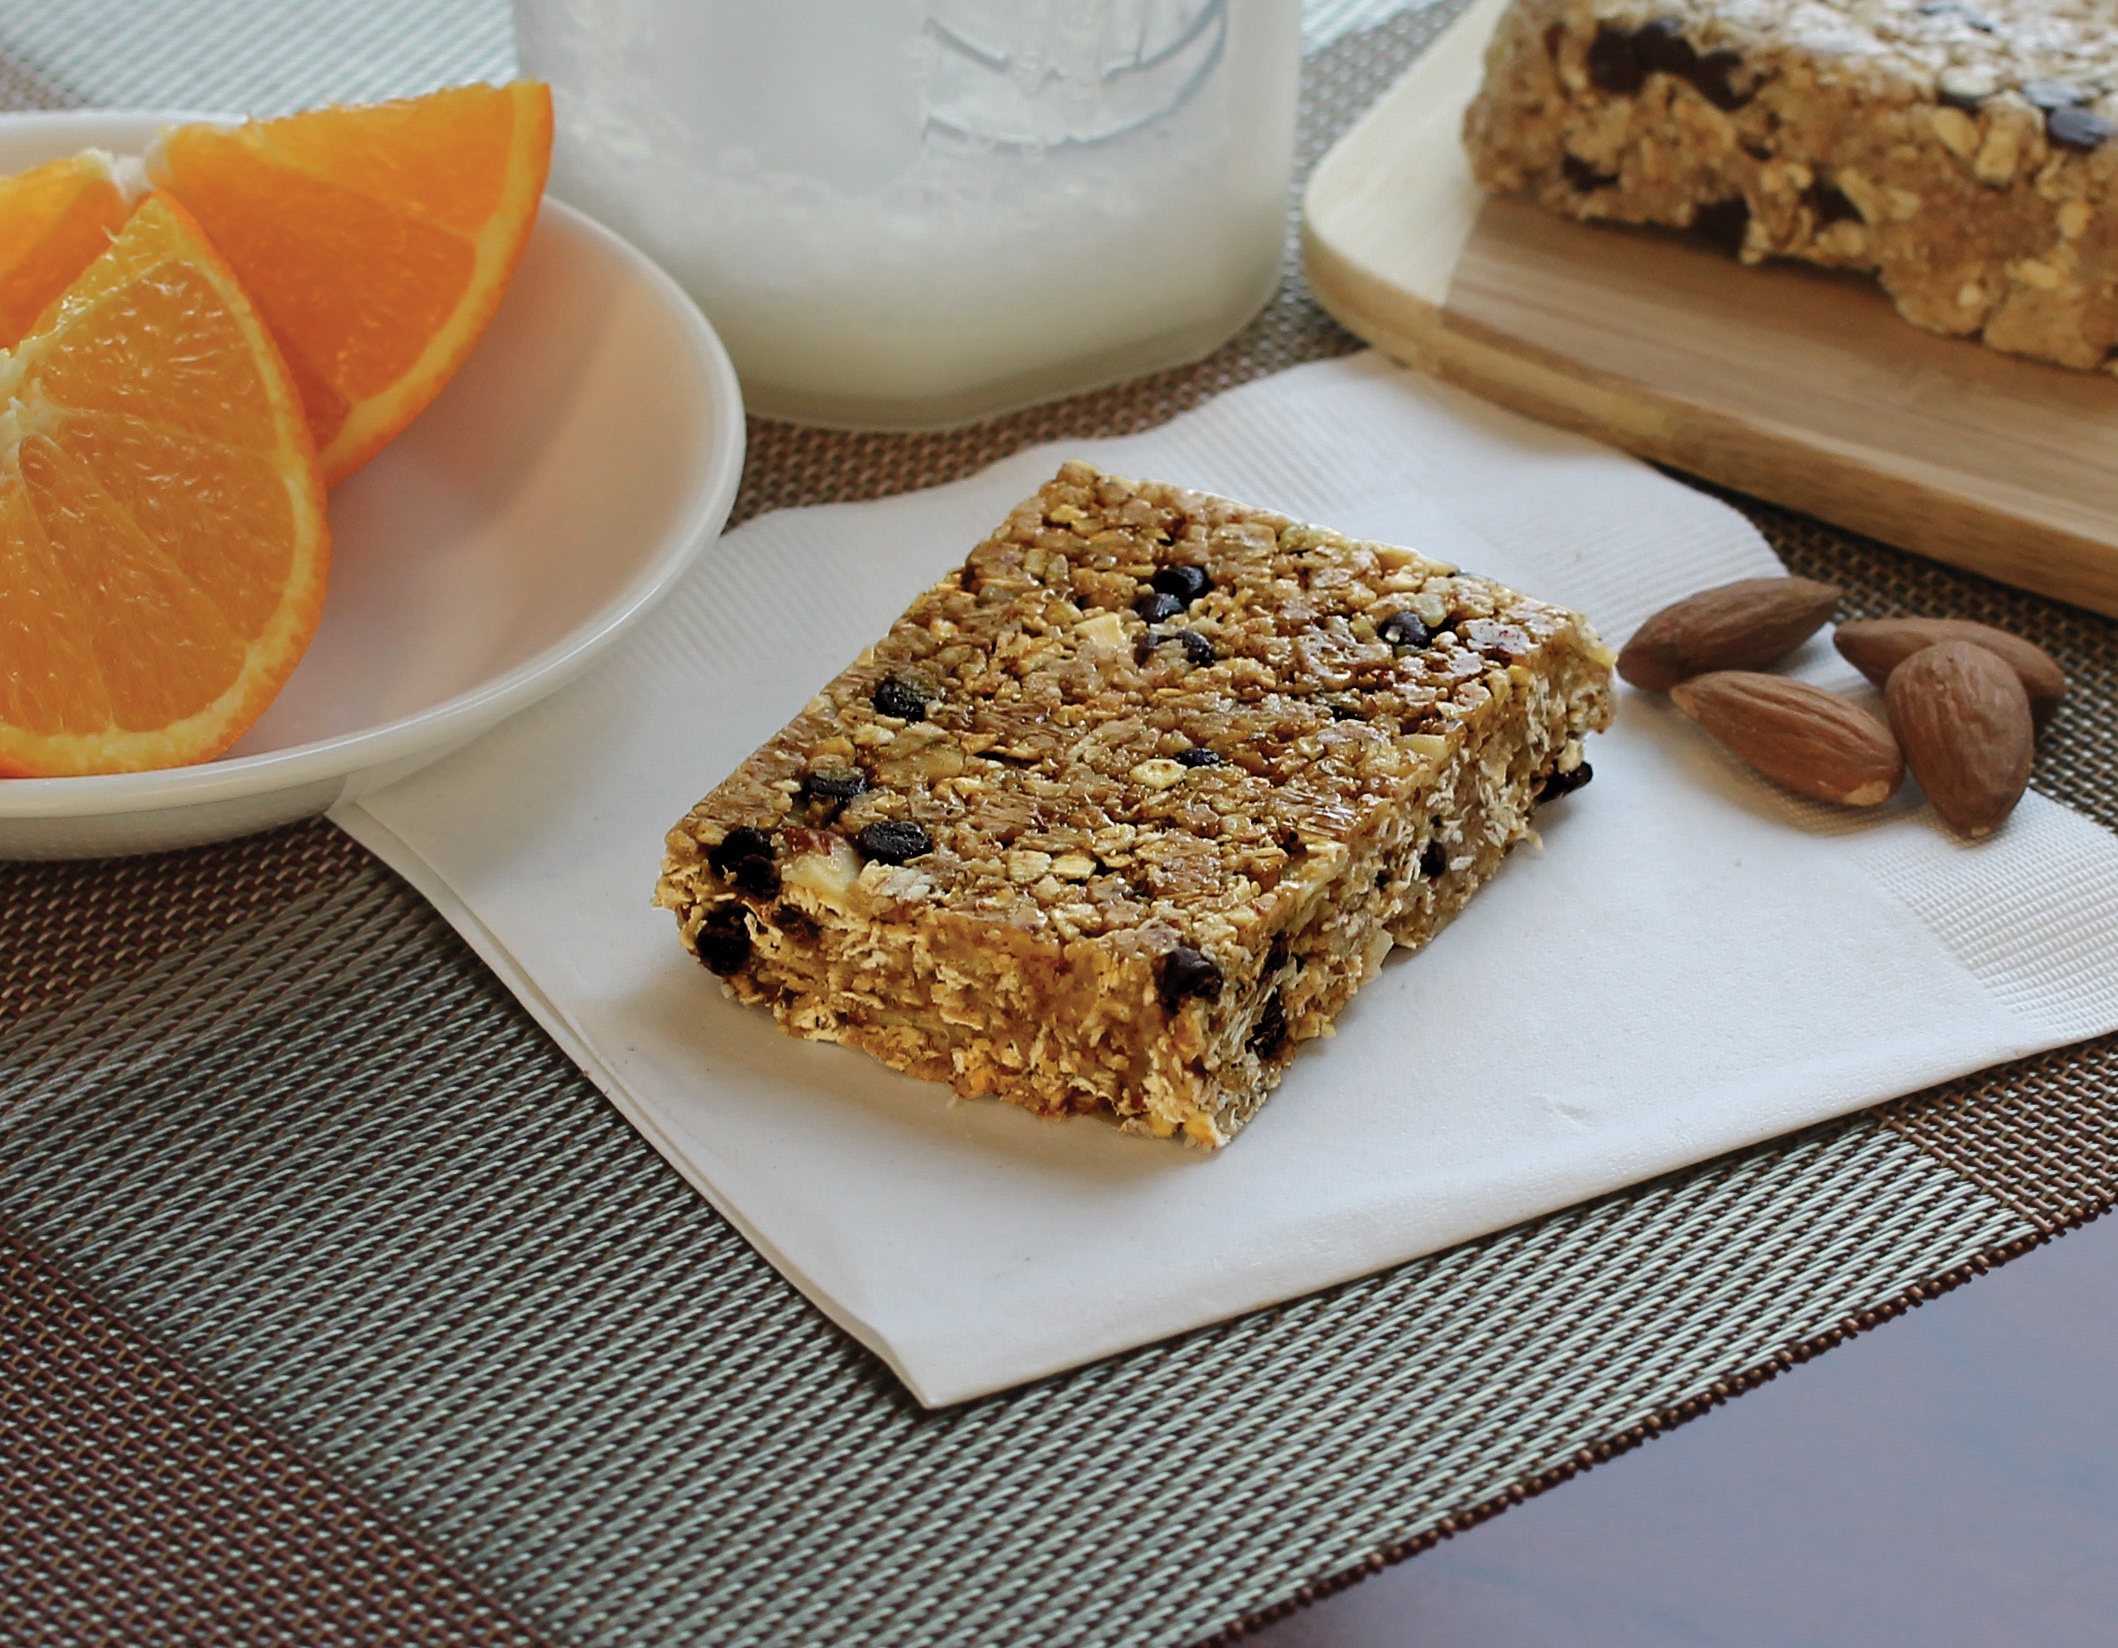 Chocolate Chip Almond Oat Bar